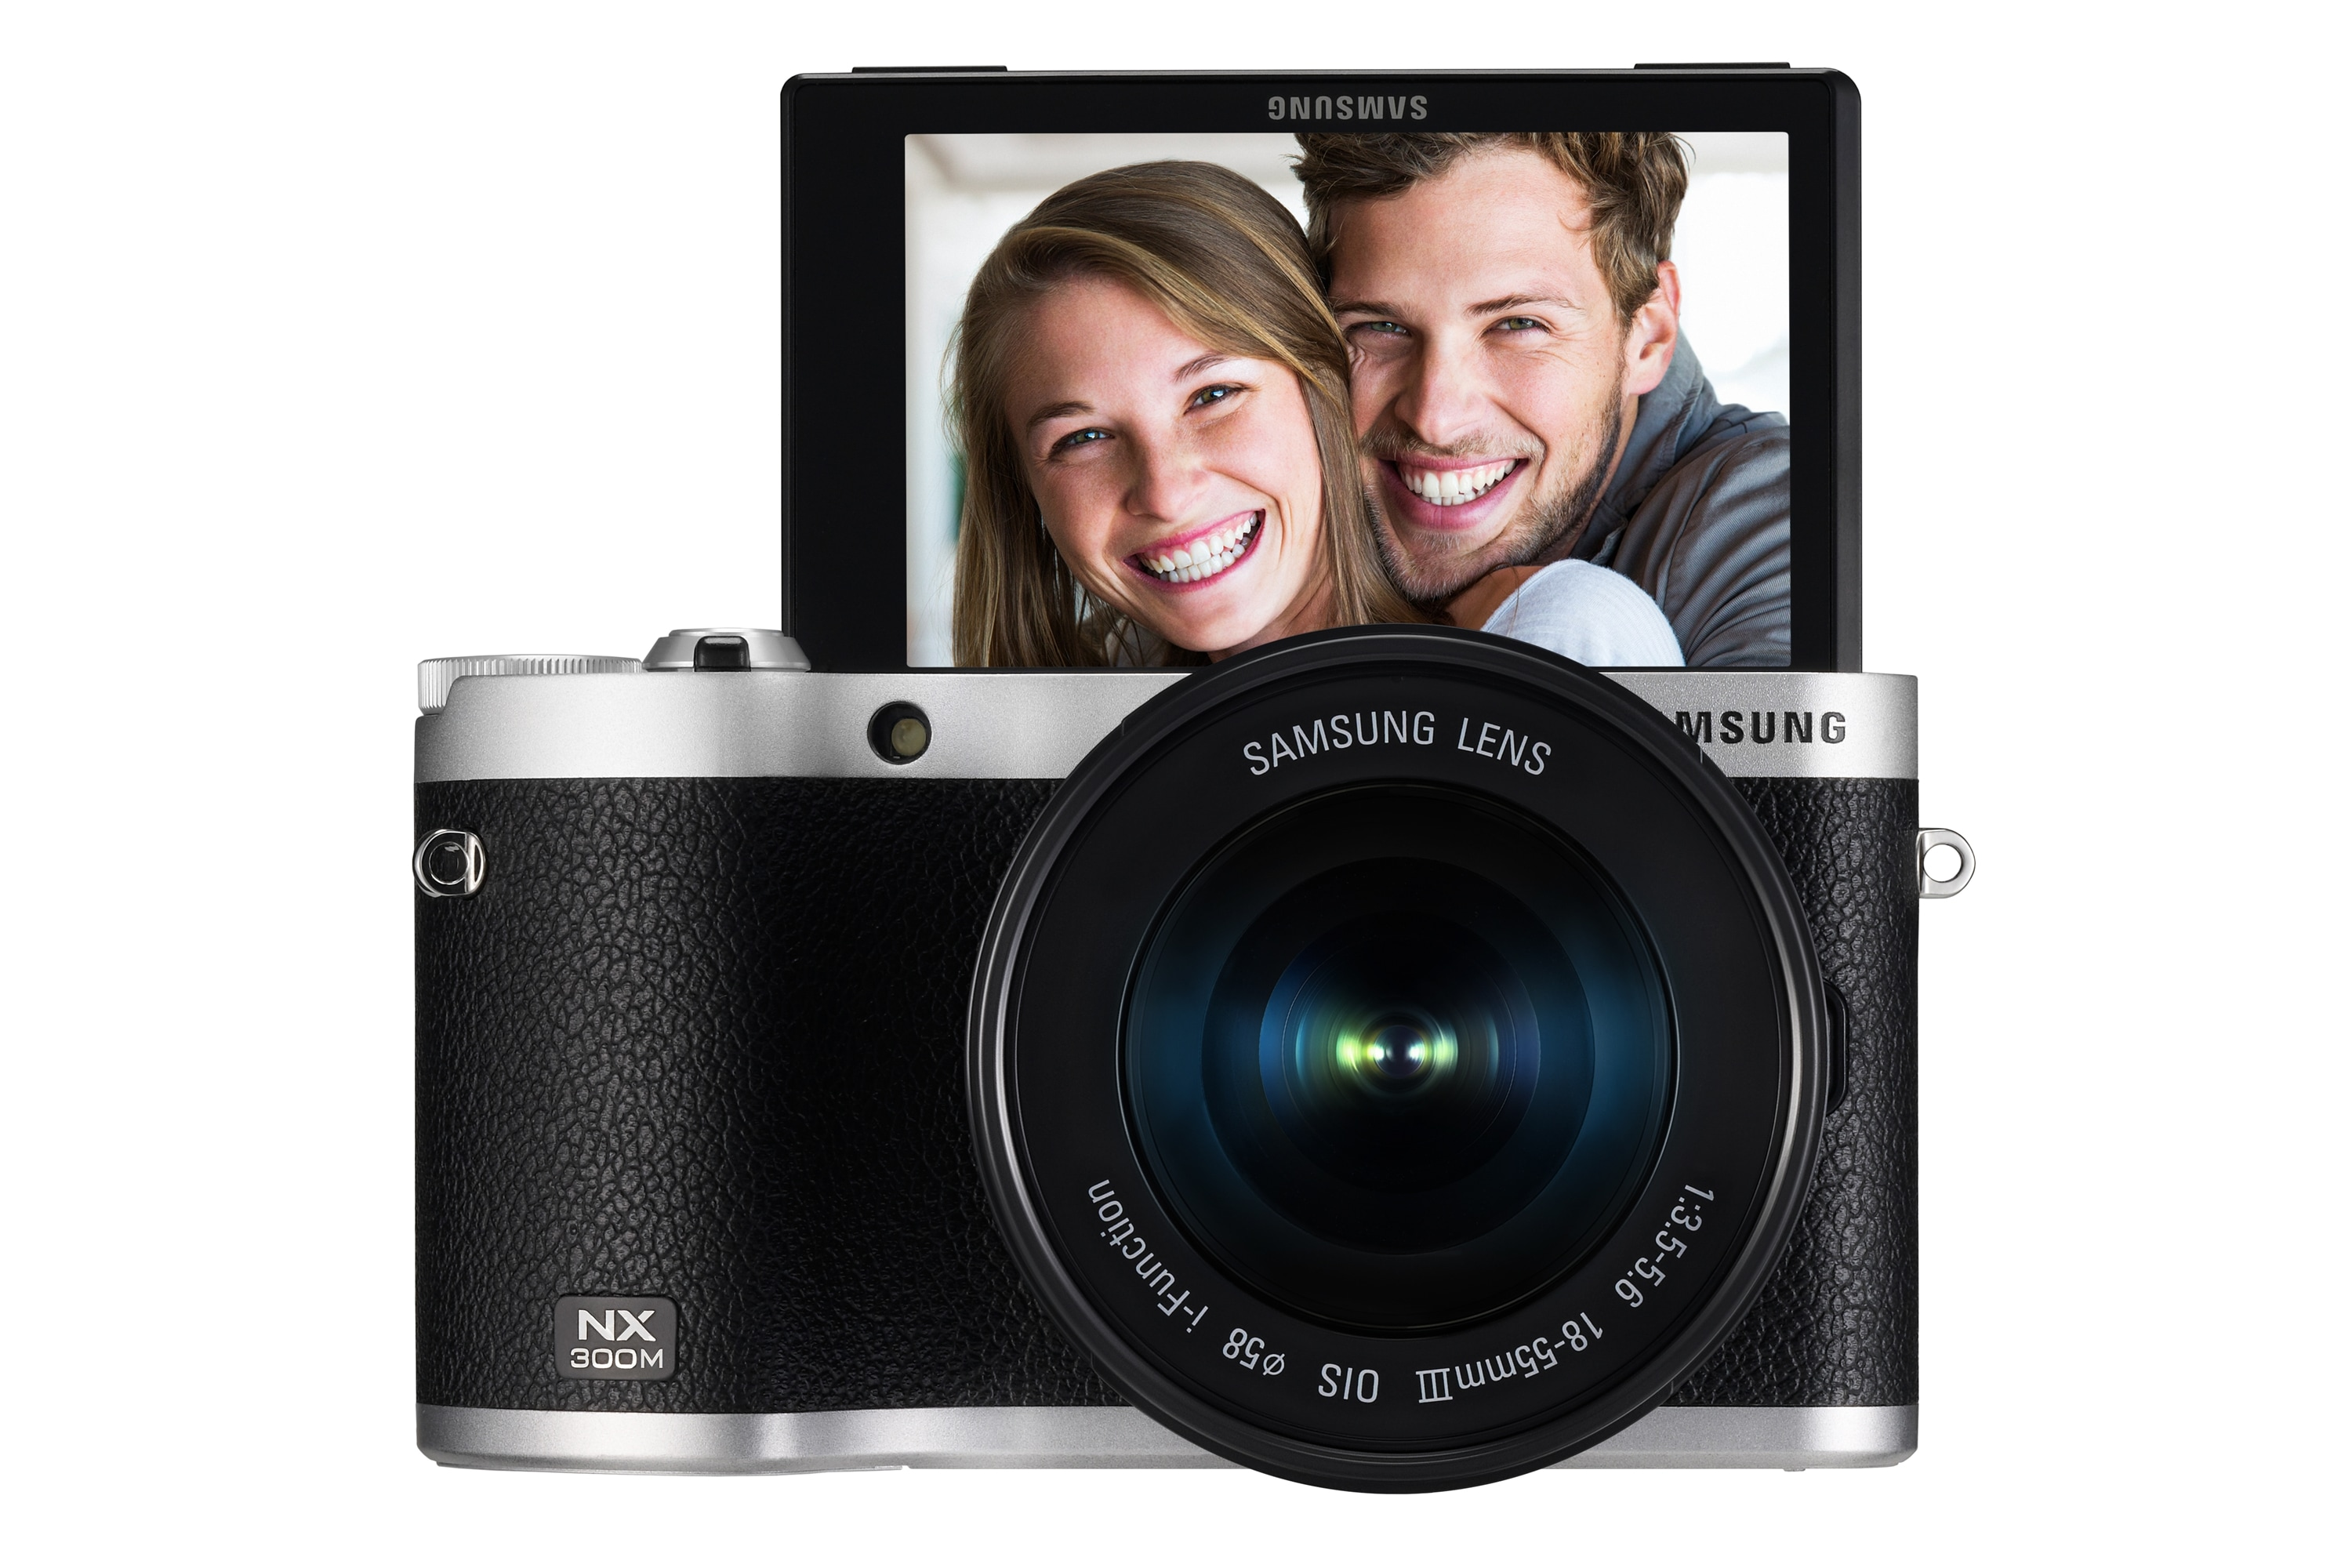 NX300M Front Display Up_18-55mm Black